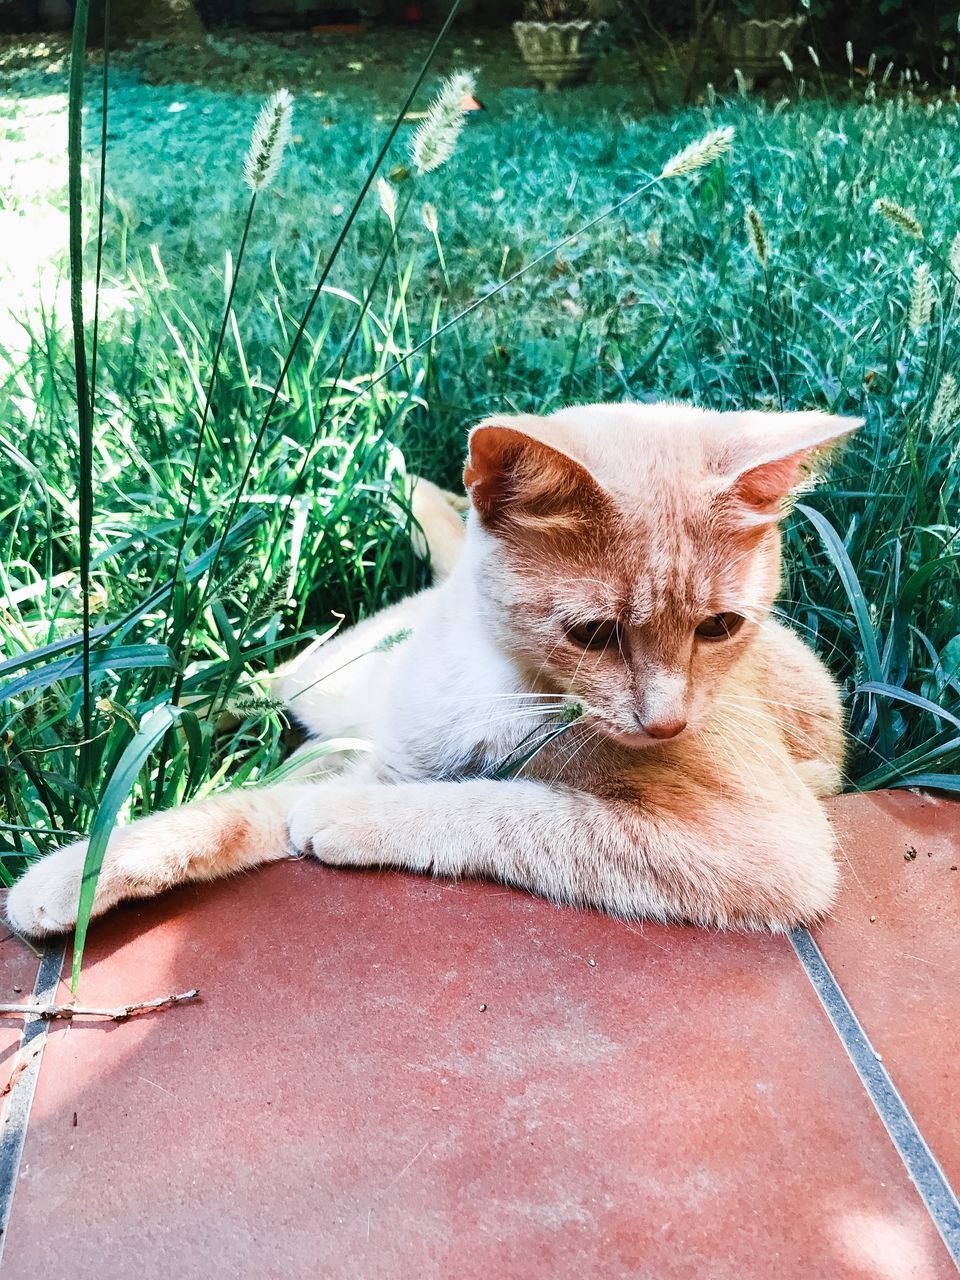 mammal, pets, domestic, one animal, domestic animals, cat, domestic cat, vertebrate, feline, grass, relaxation, plant, day, nature, no people, lying down, green color, whisker, ginger cat